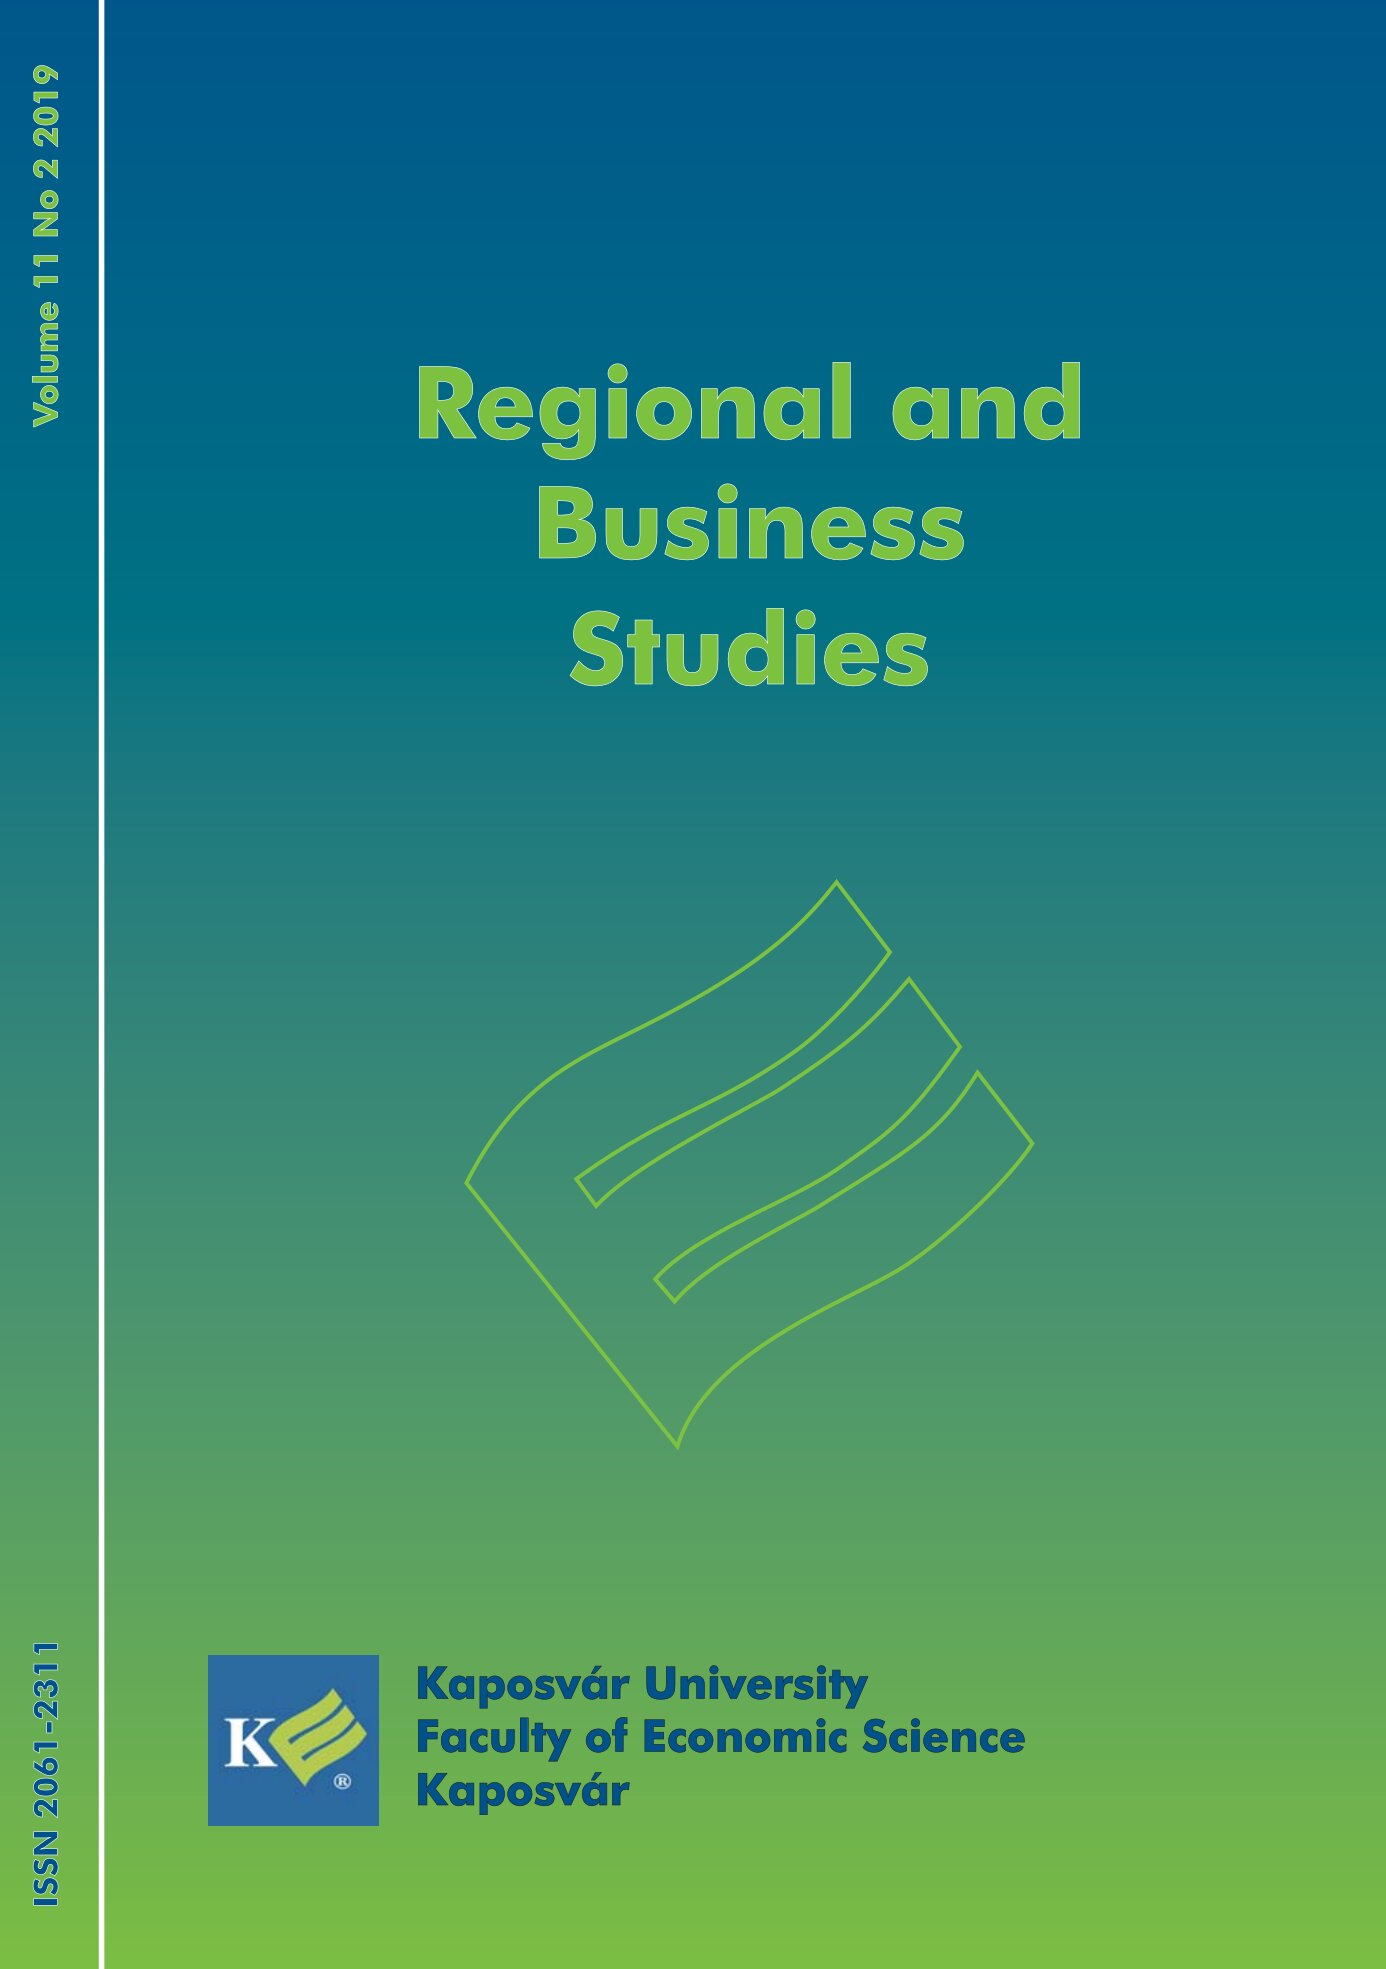 View Vol. 11 No. 2 (2019): Regional and Business Studies